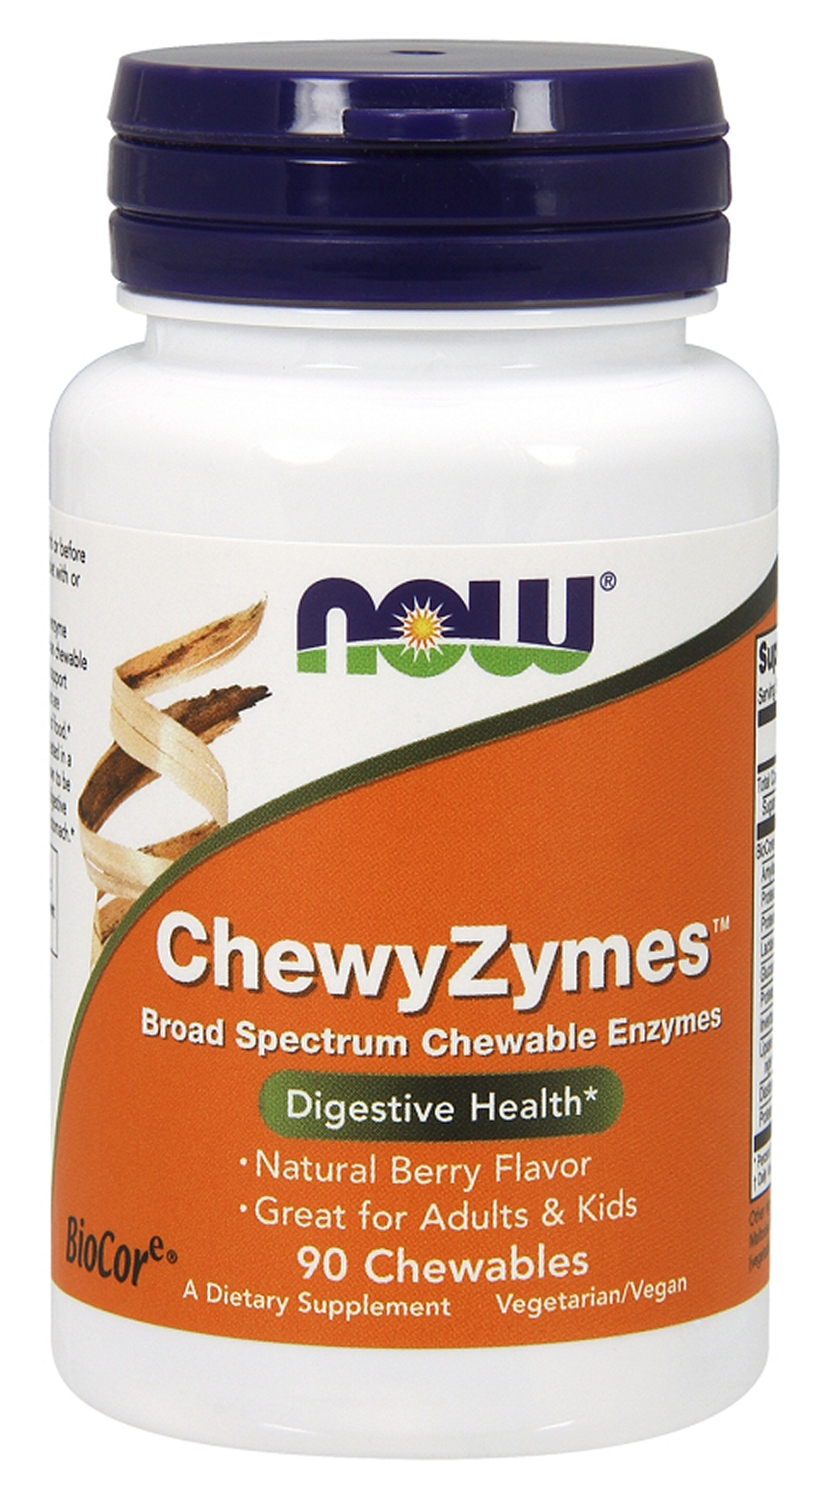 ChewyZymes 90 Chewables by NOW